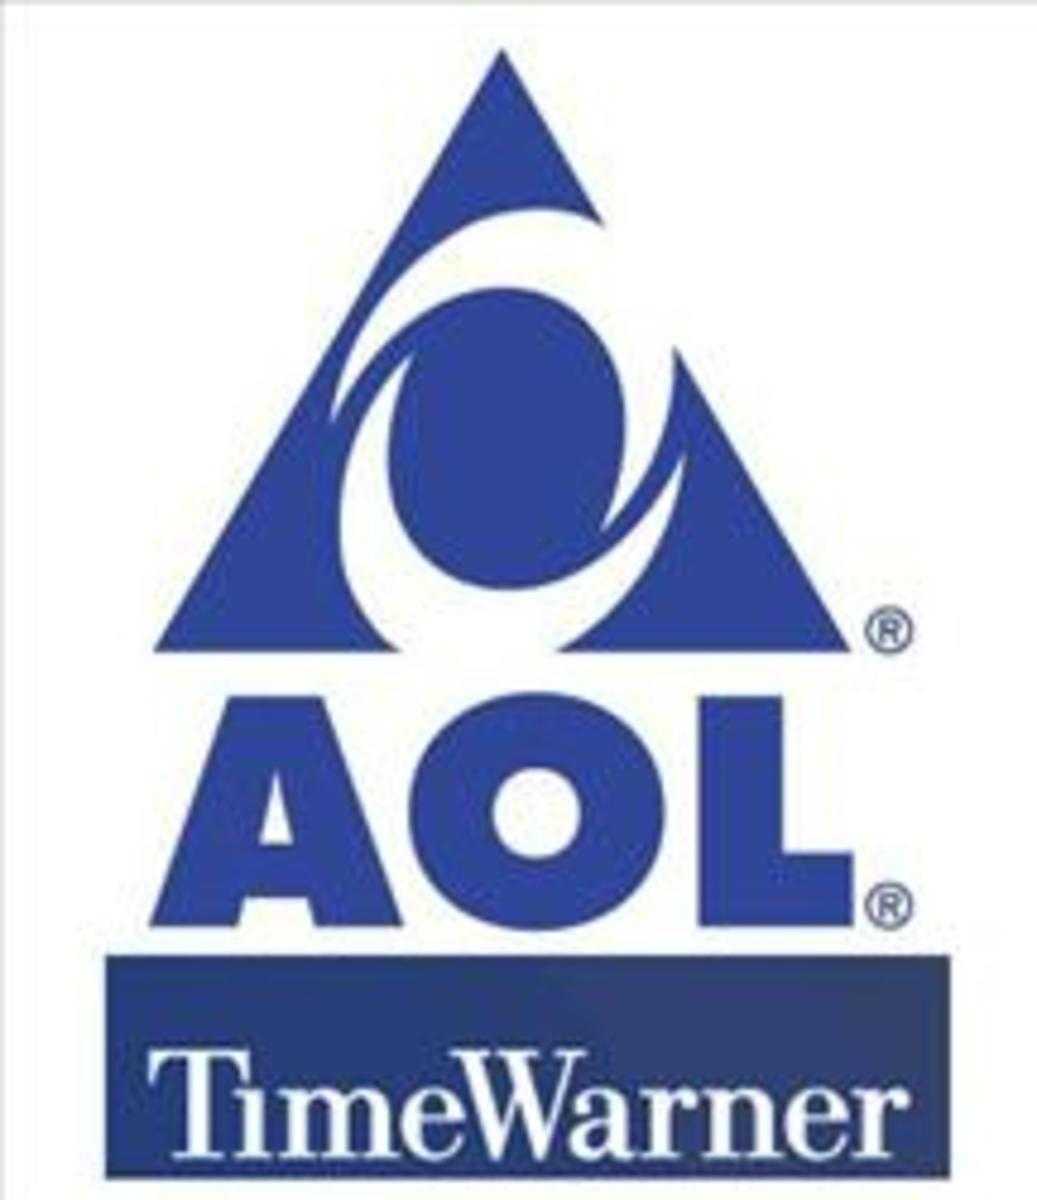 AOL/Timewarner Logo